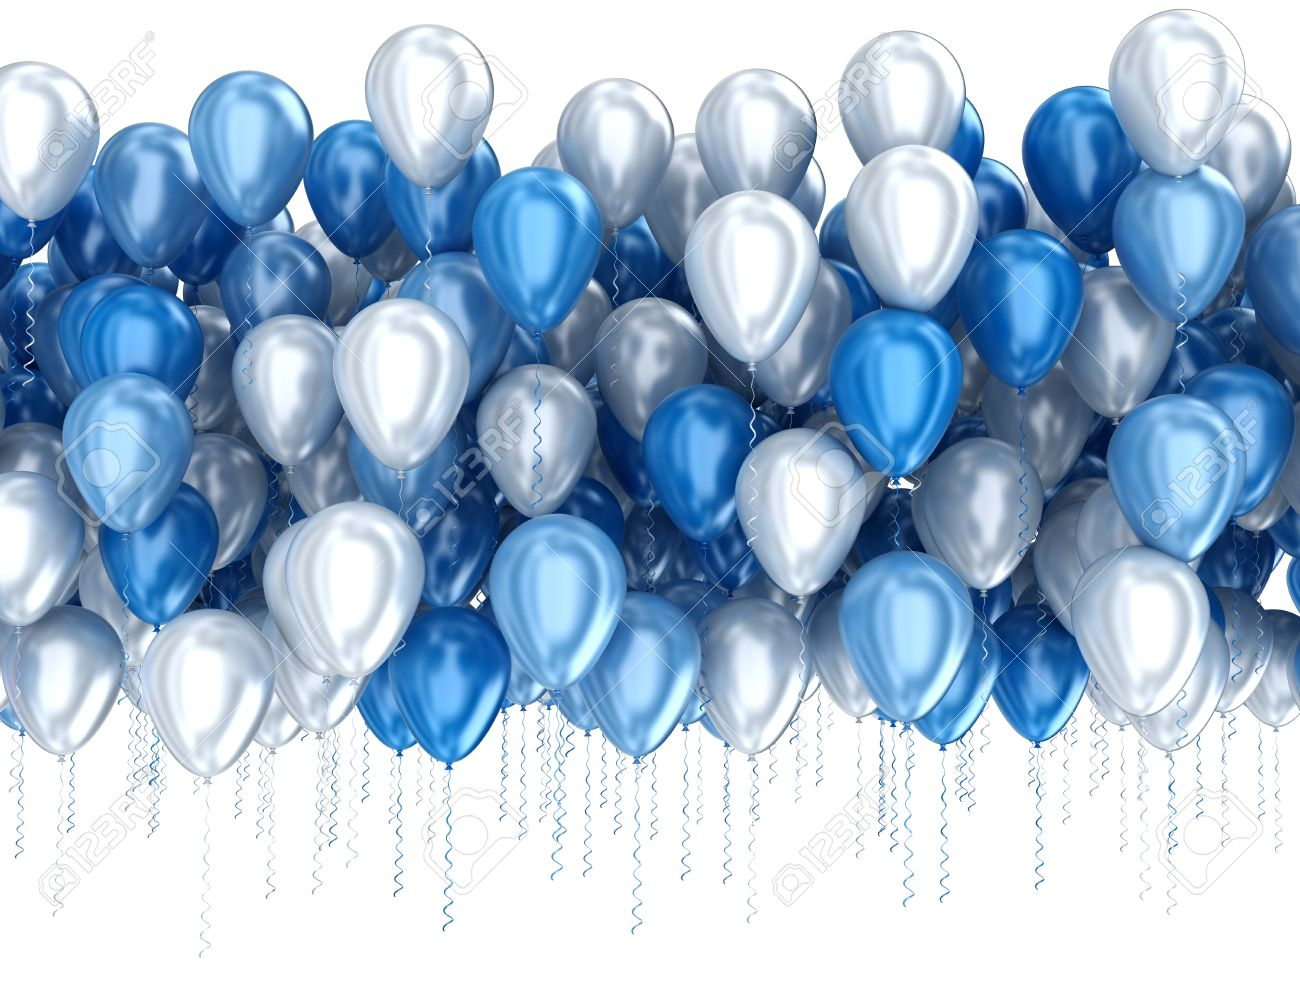 blue balloons isolated on white background stock photo picture and